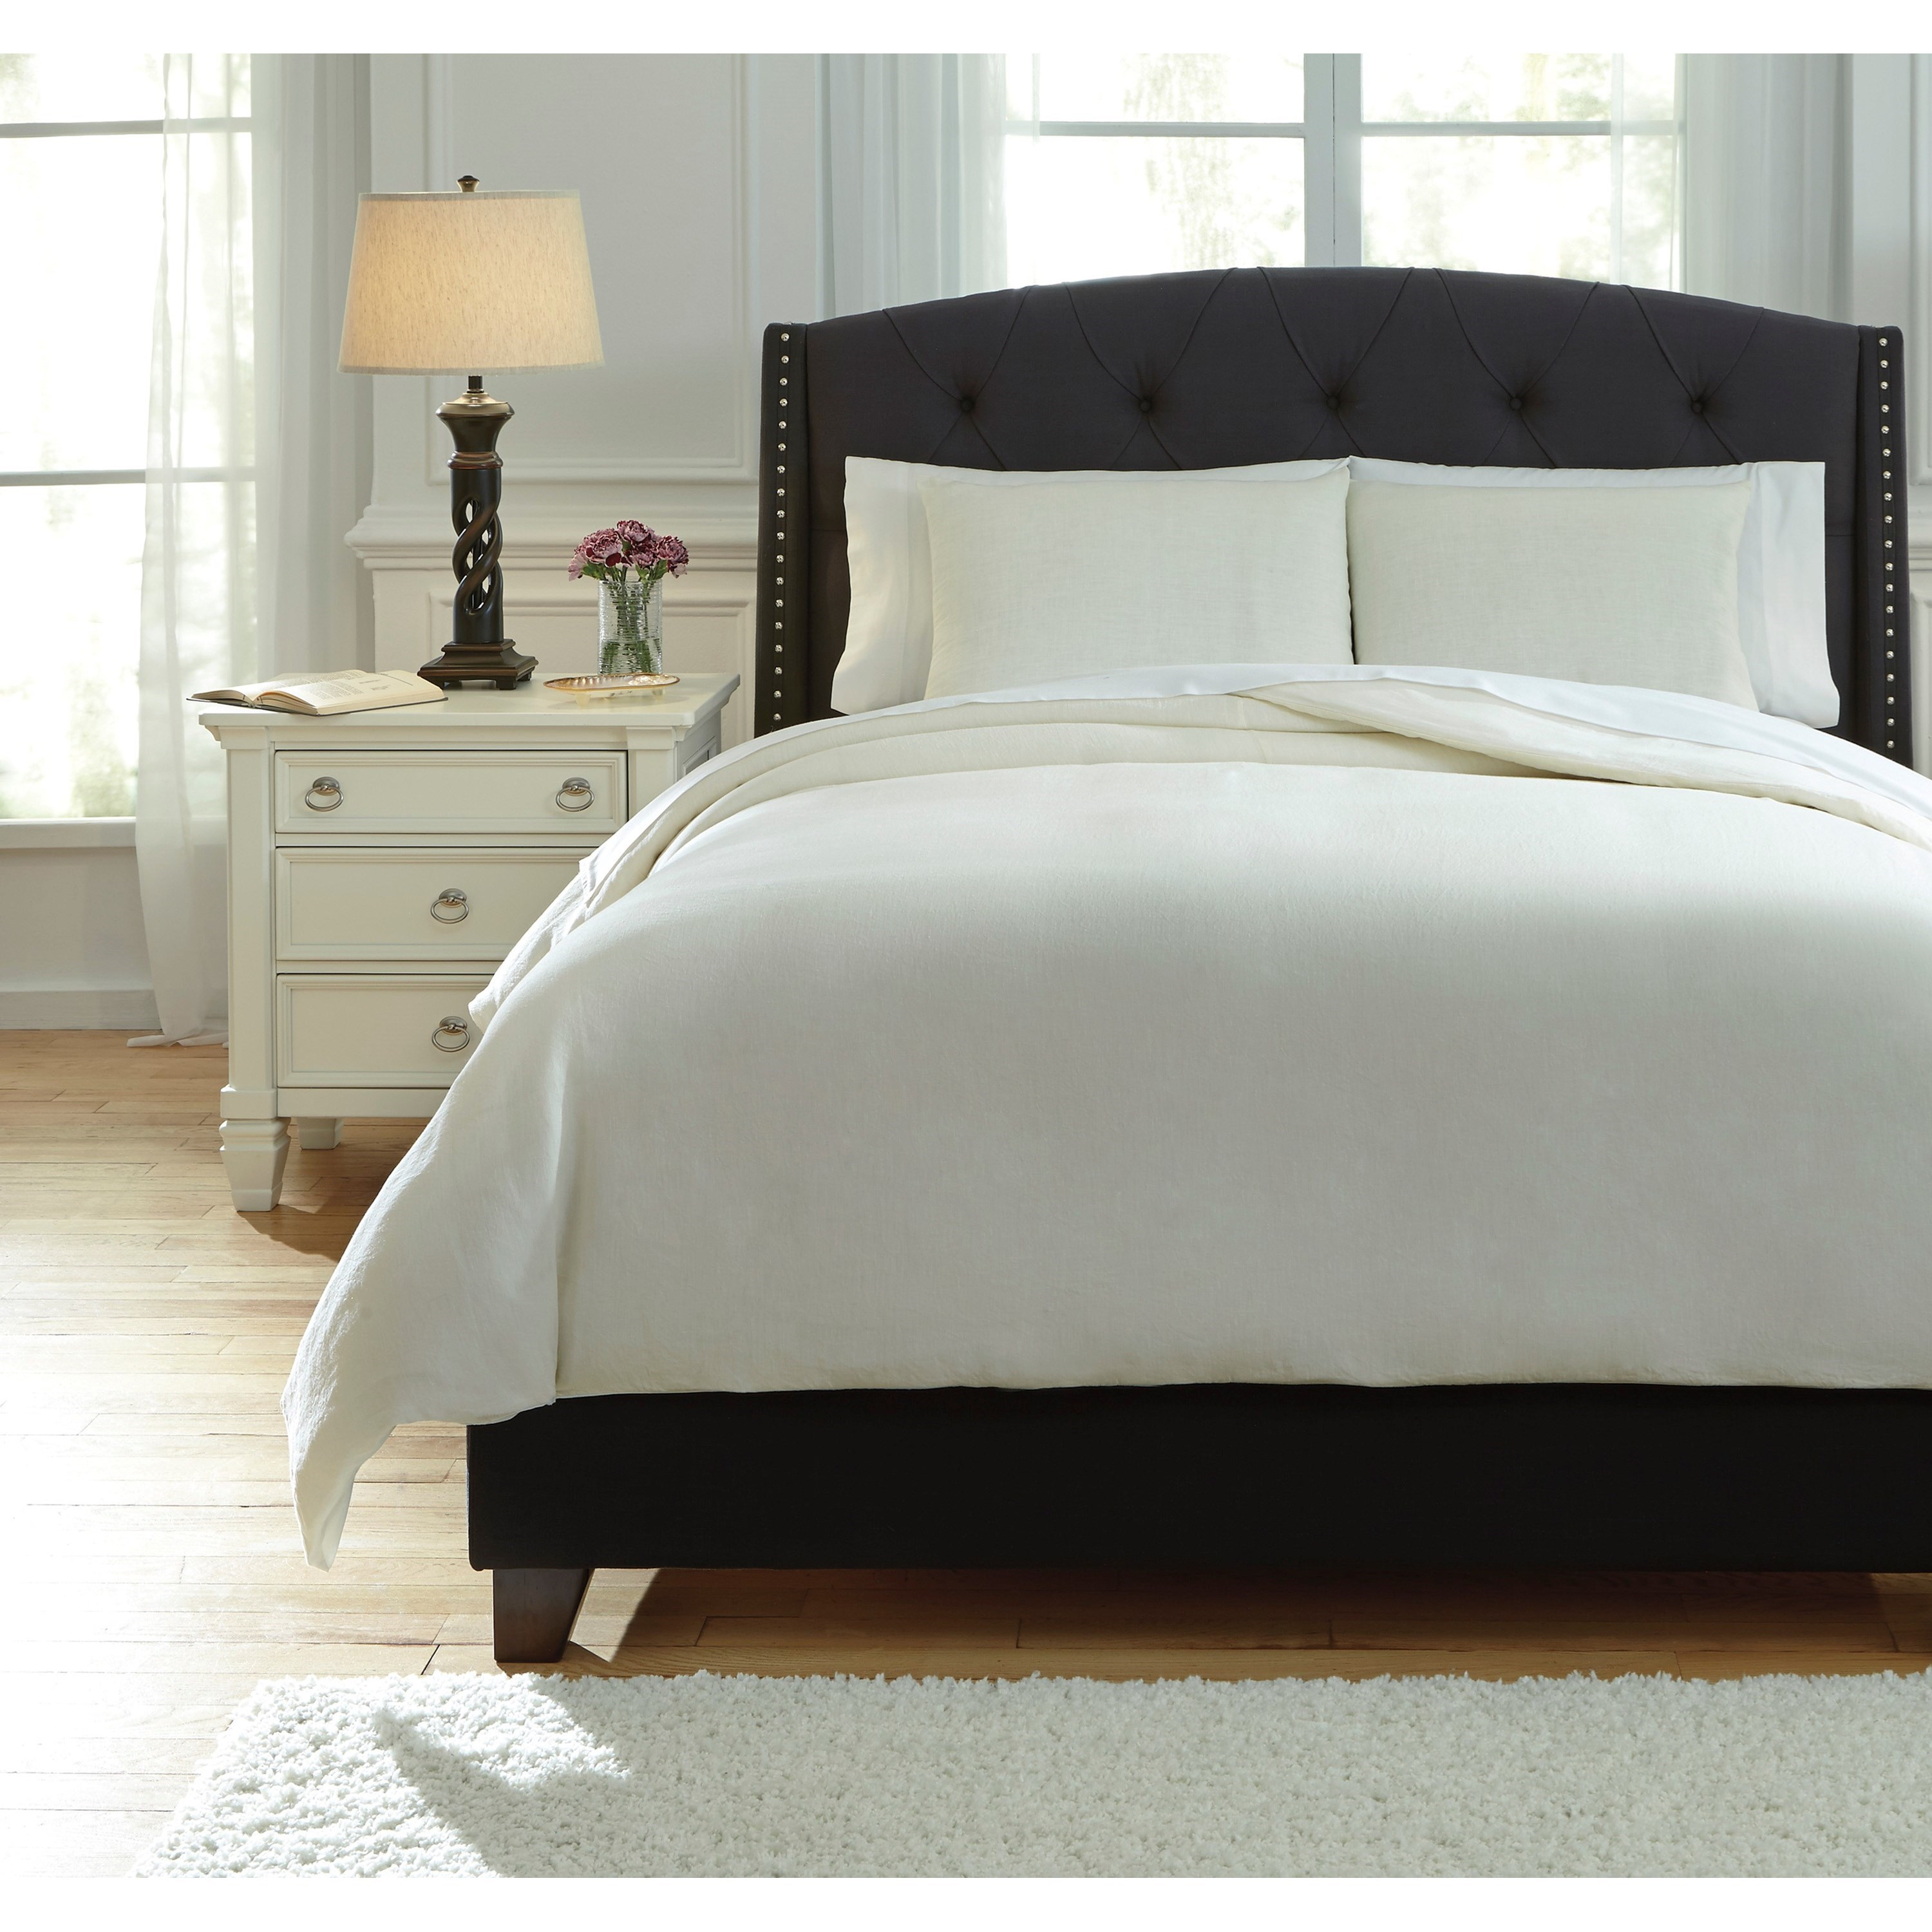 Bedding Sets Queen Bergen Ivory Duvet Cover Set by Signature Design by Ashley at Lapeer Furniture & Mattress Center